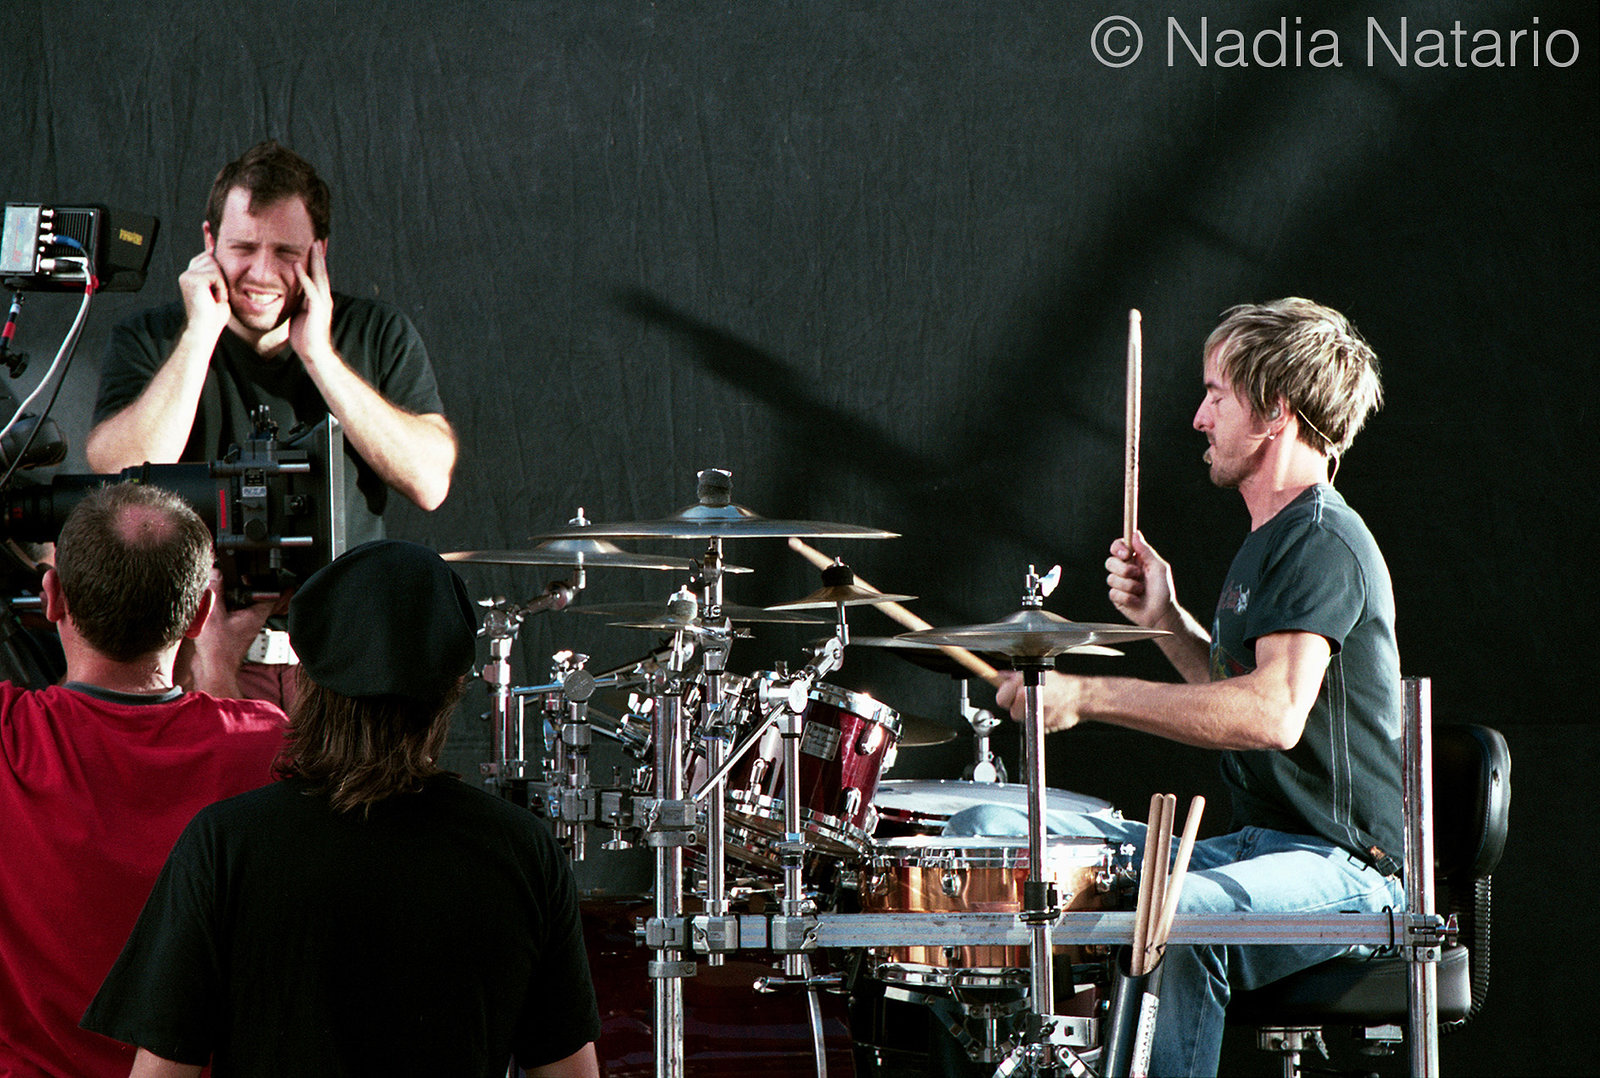 On the set of Hoobastank video shoot 'Disappear', Barcelona 2004